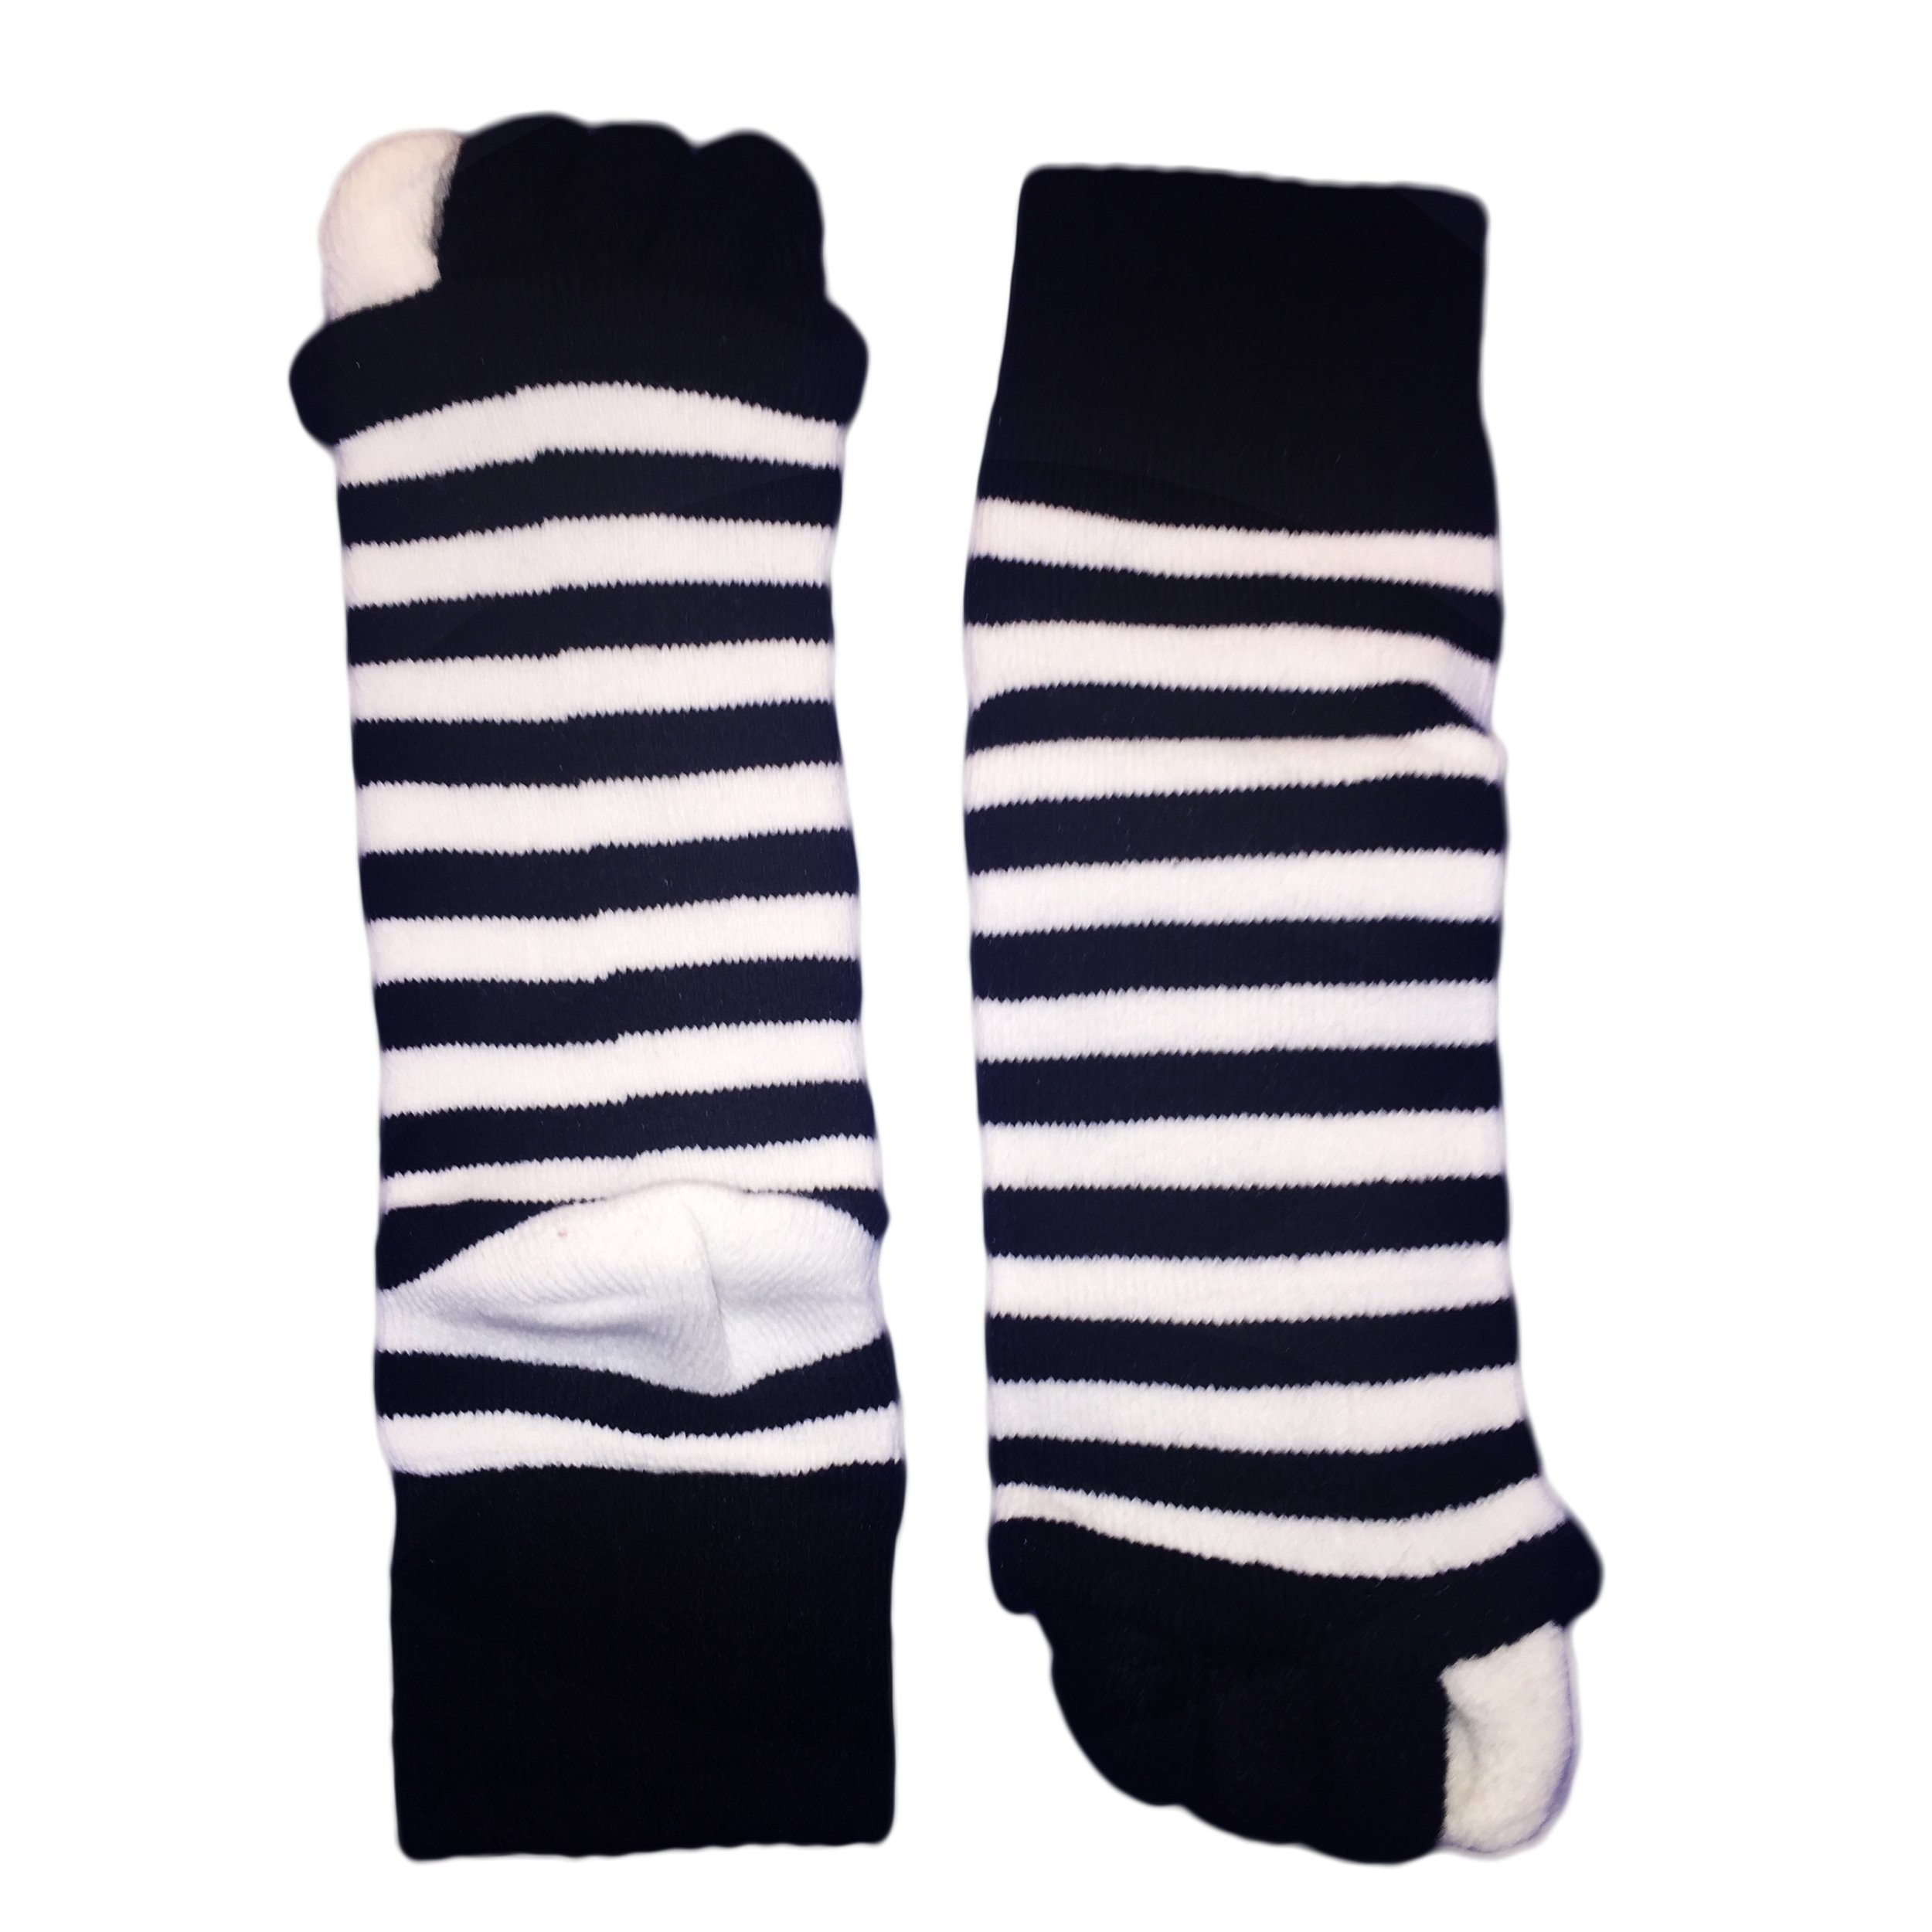 Moja Sports (Black/White, 1Pair) Toes Alignment Socks Open Five Toe Separator Spacer Relaxing Comfort Tendon Pain Relief Comfy Foot Sock Yoga Gym Pedicure (Black/White : 1 Pair, Medium) by Moja Sports (Image #4)